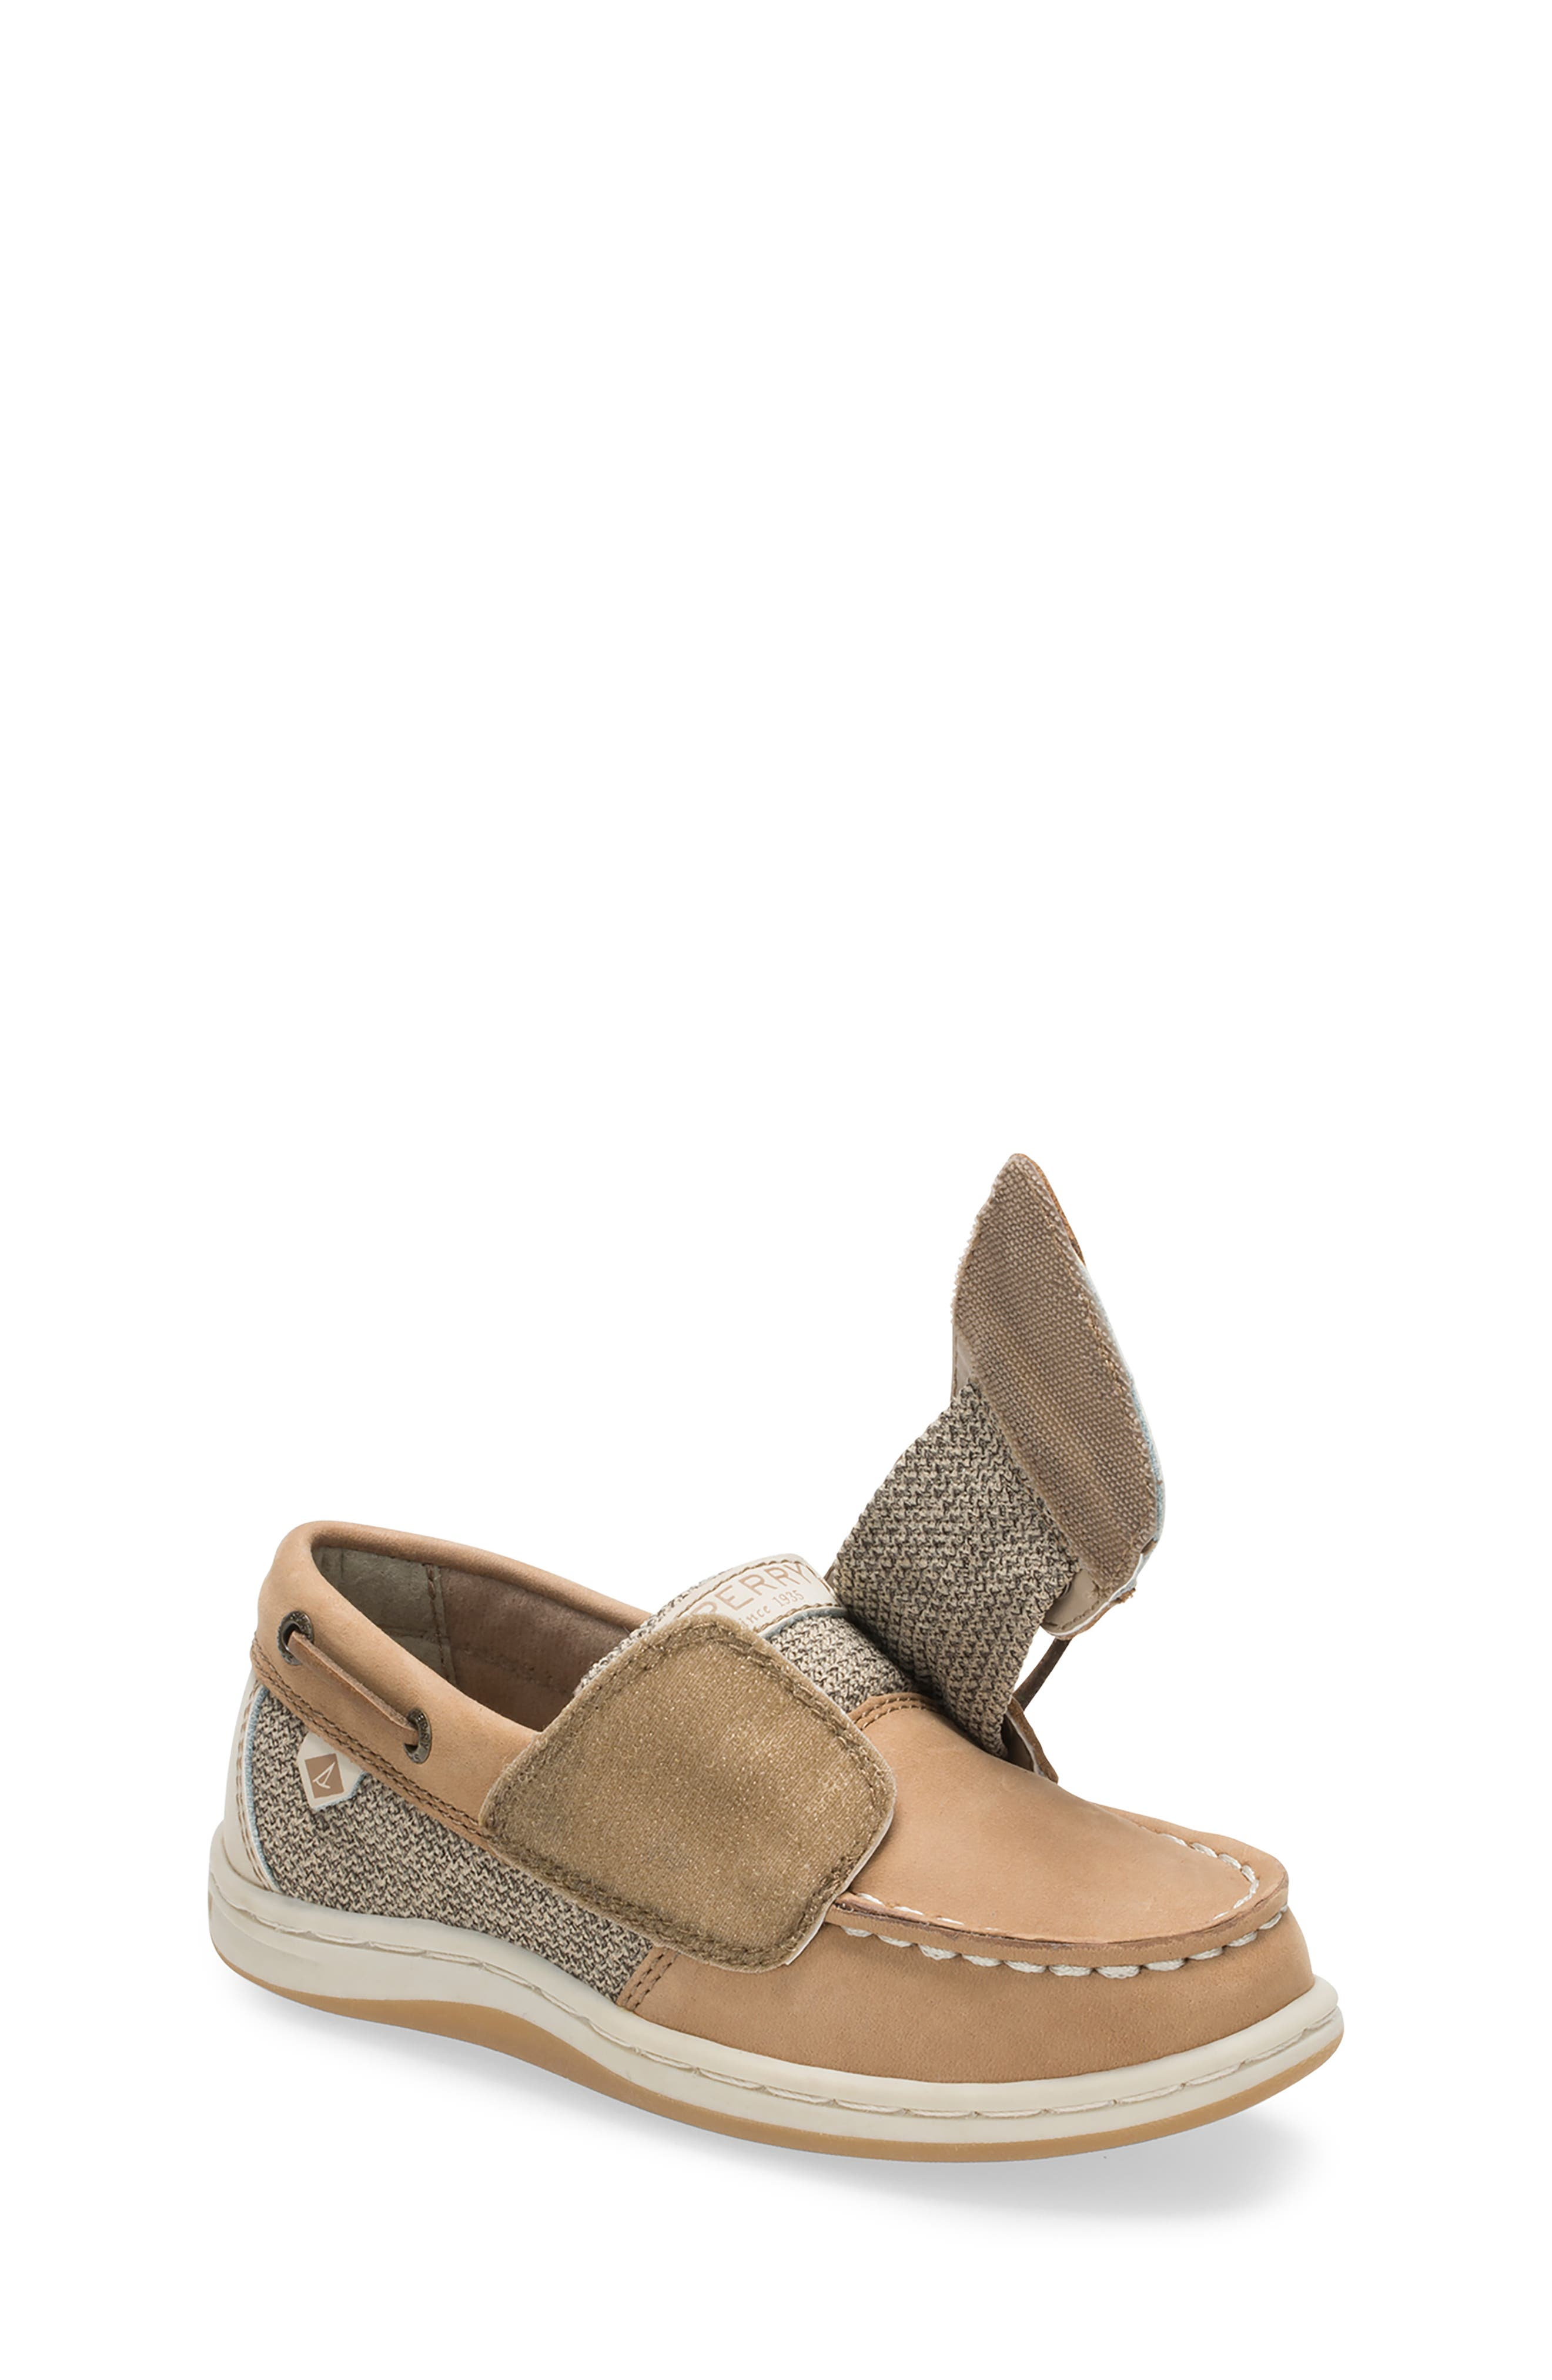 SPERRY KIDS, 'Songfish' Boat Shoe, Alternate thumbnail 3, color, LINEN/ OAT LEATHER